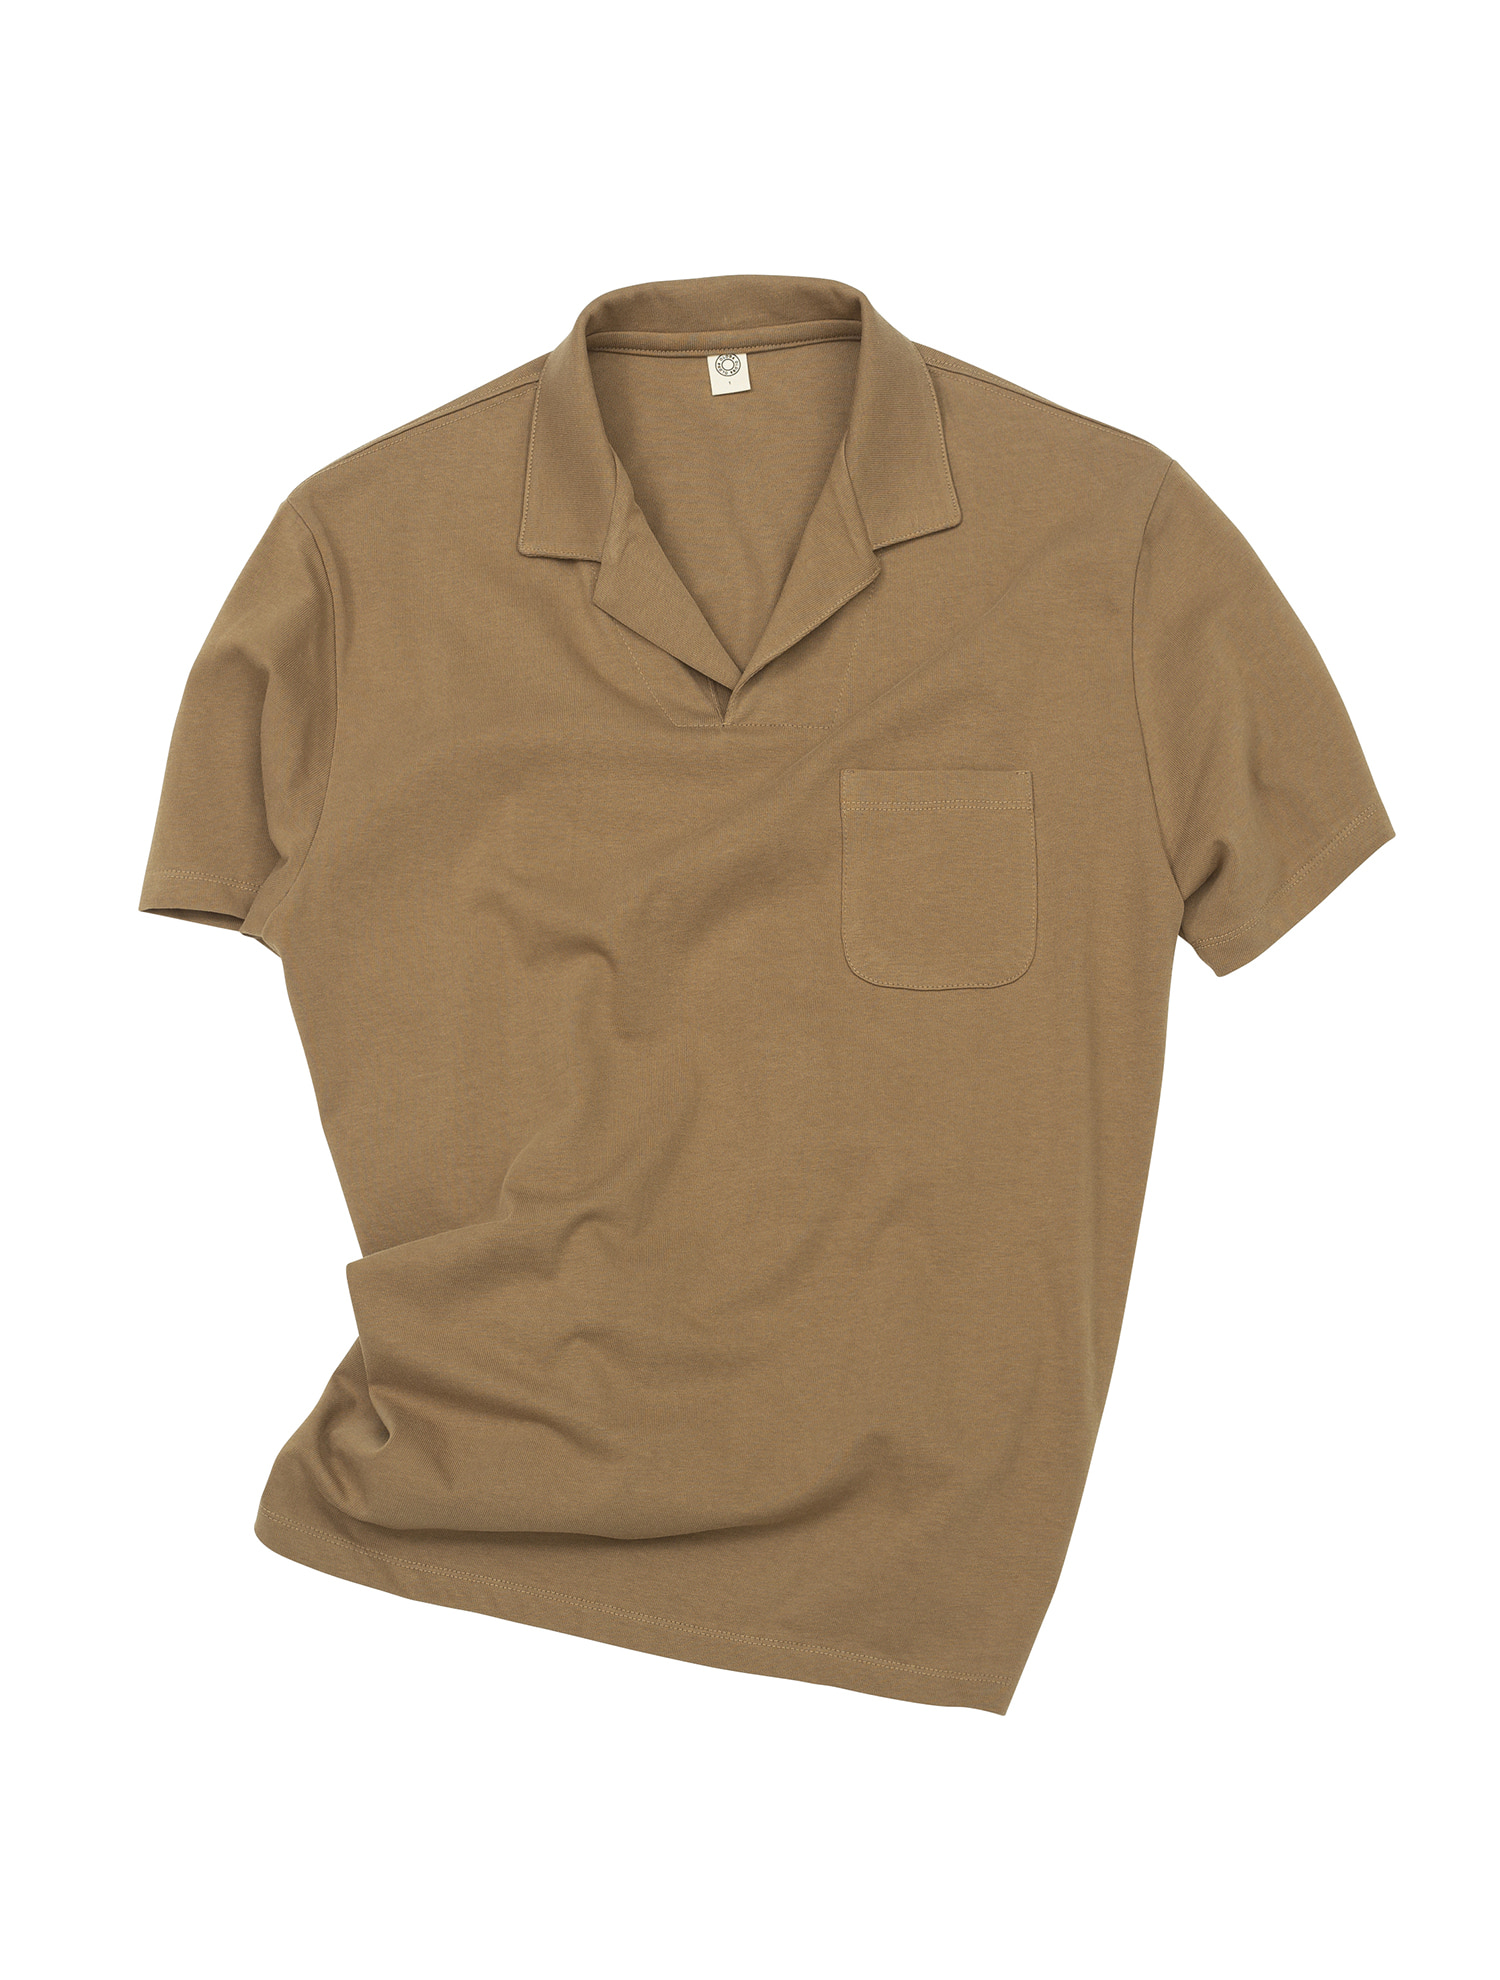 [올드비]  GEN COTTON OPEN COLLAR POLO SHIRT COCA MOCHA